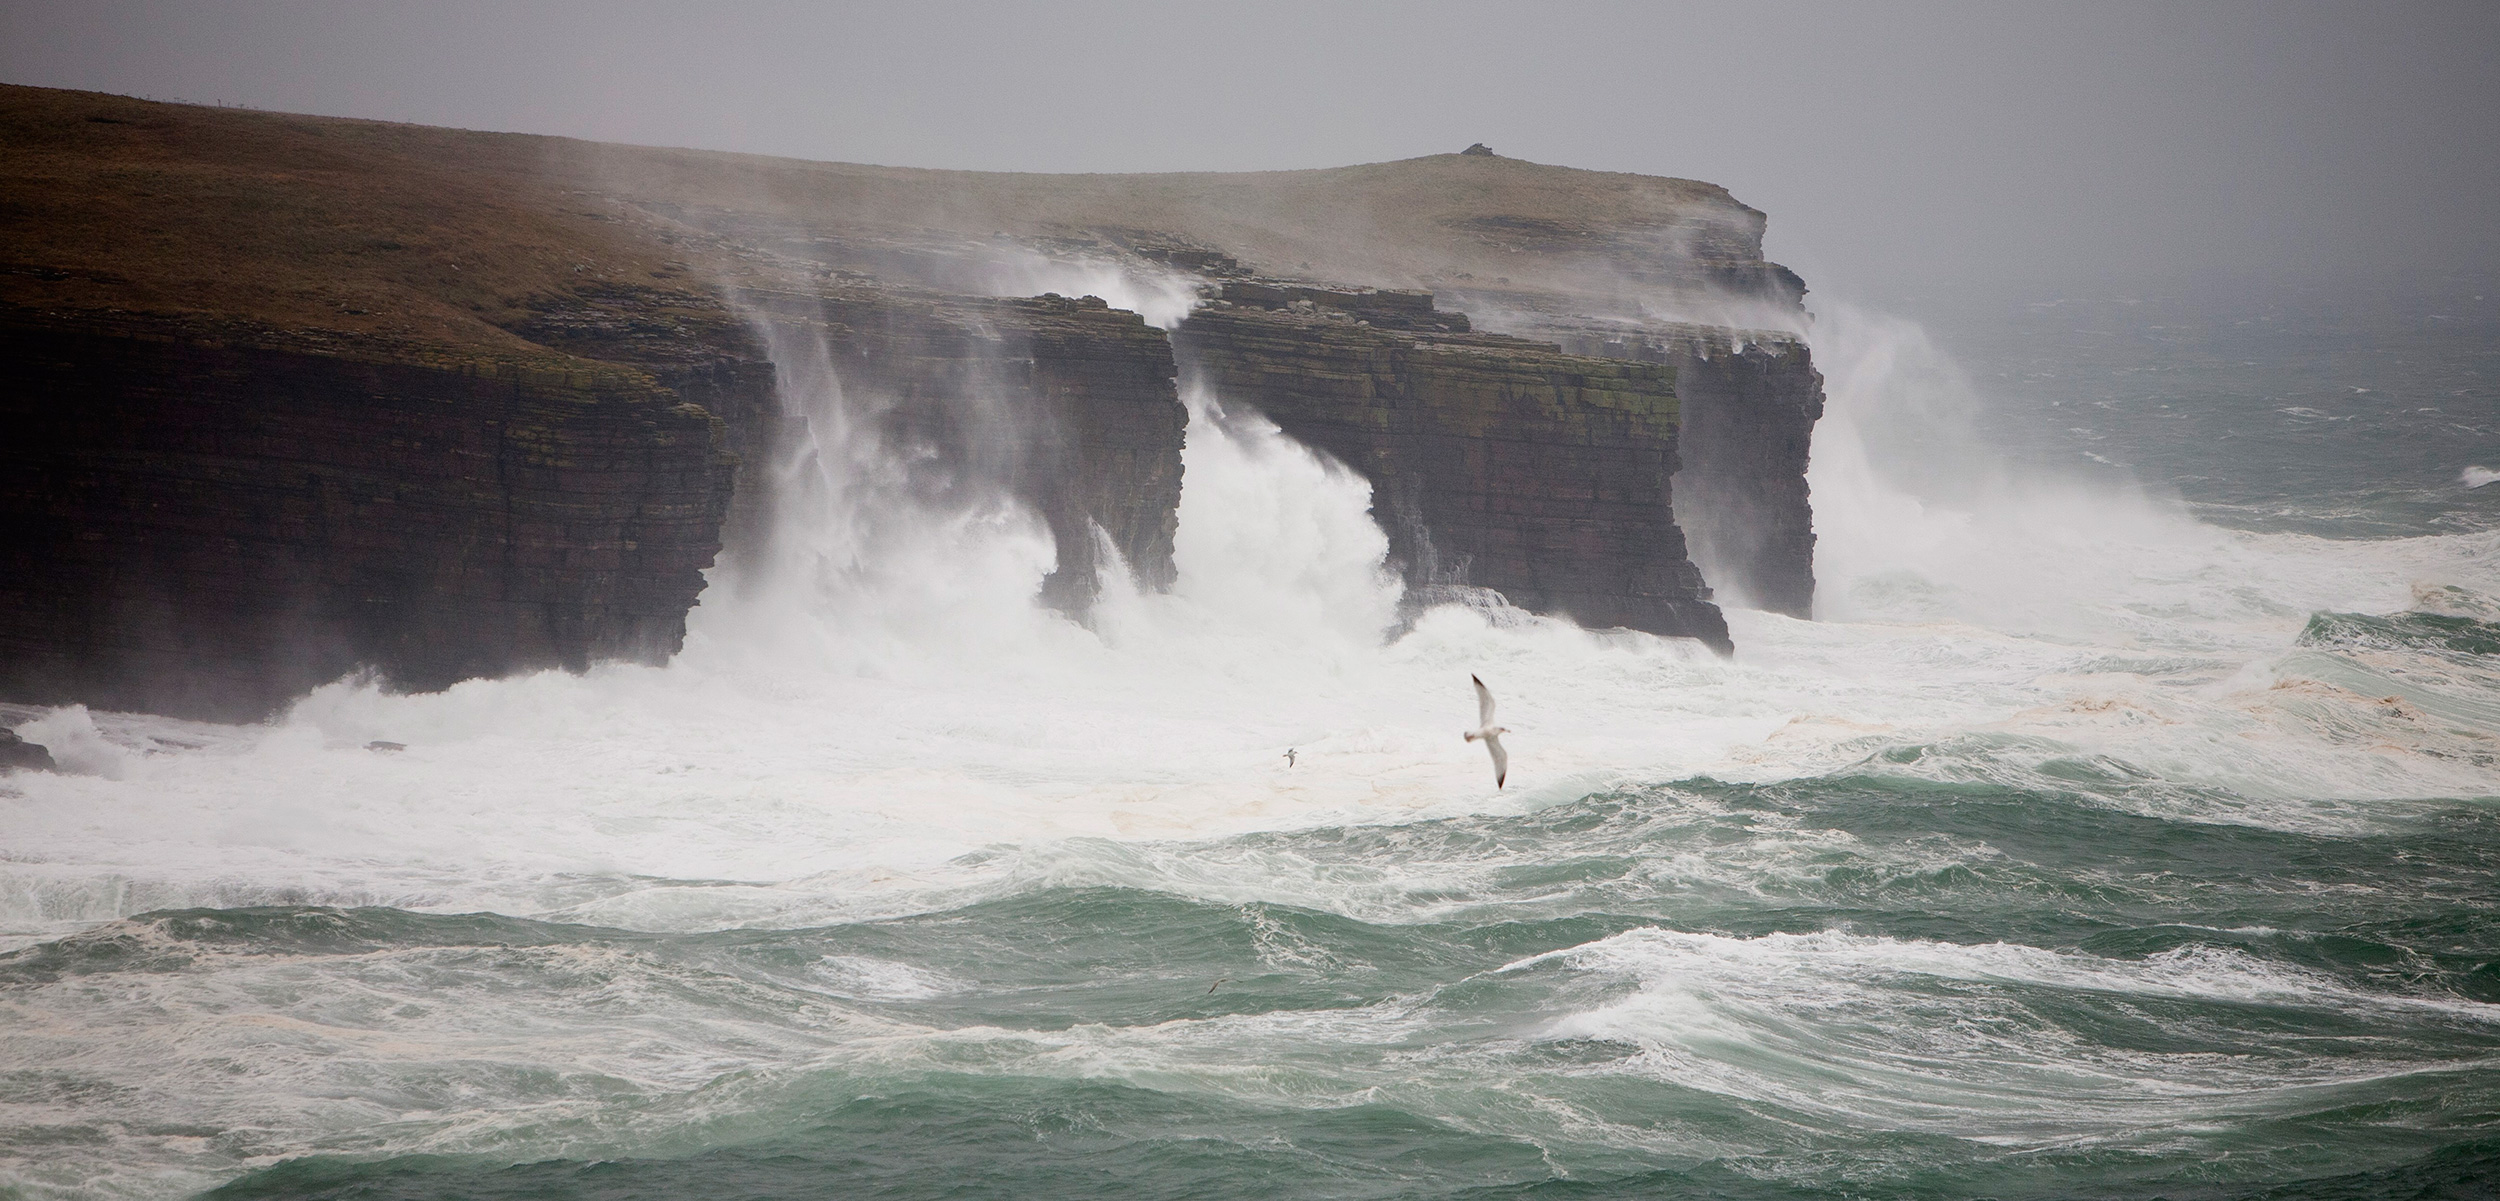 Severe storms threaten coastal archaeological sites in Scotland's Orkney Islands and elsewhere in the world. Photo by Ashley Cooper/Corbis